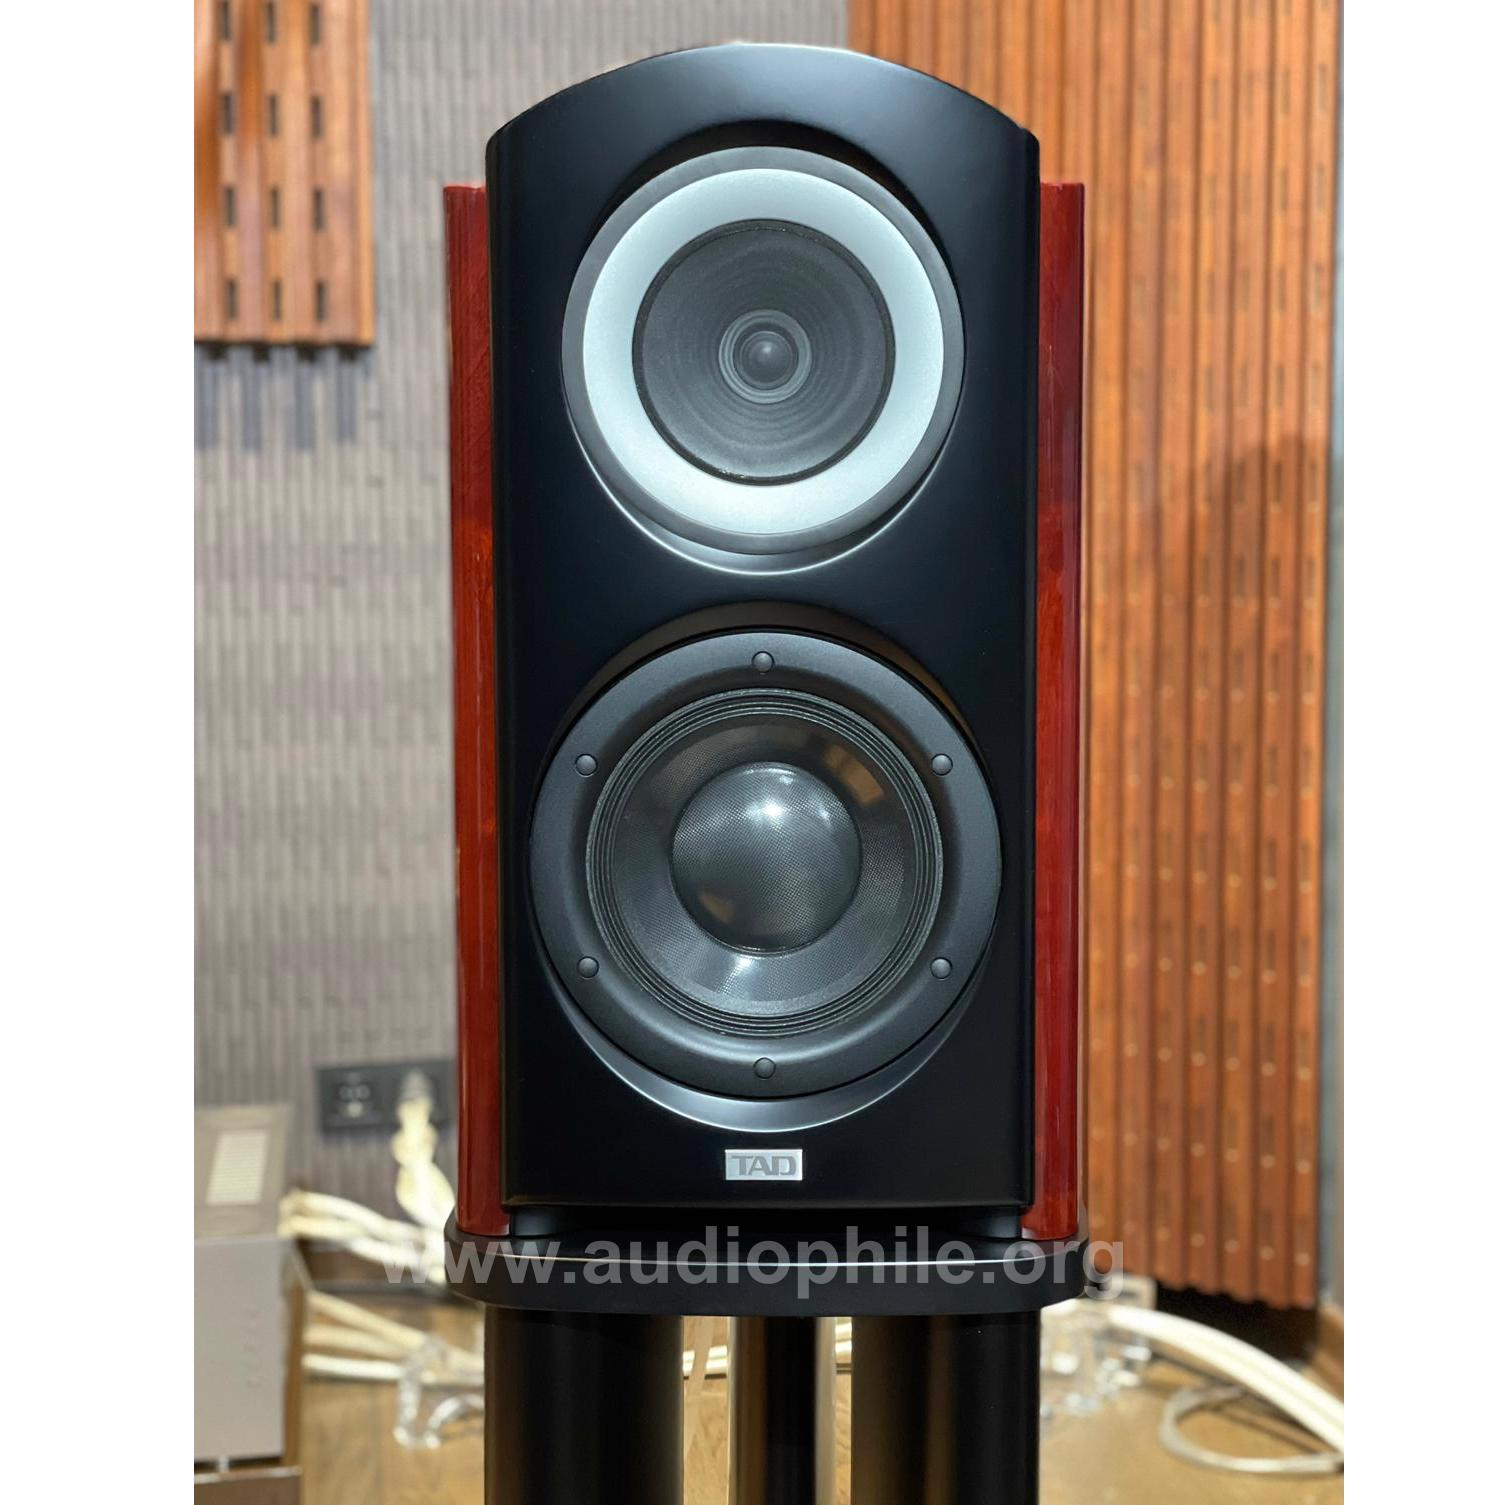 Tad compact reference one speakers